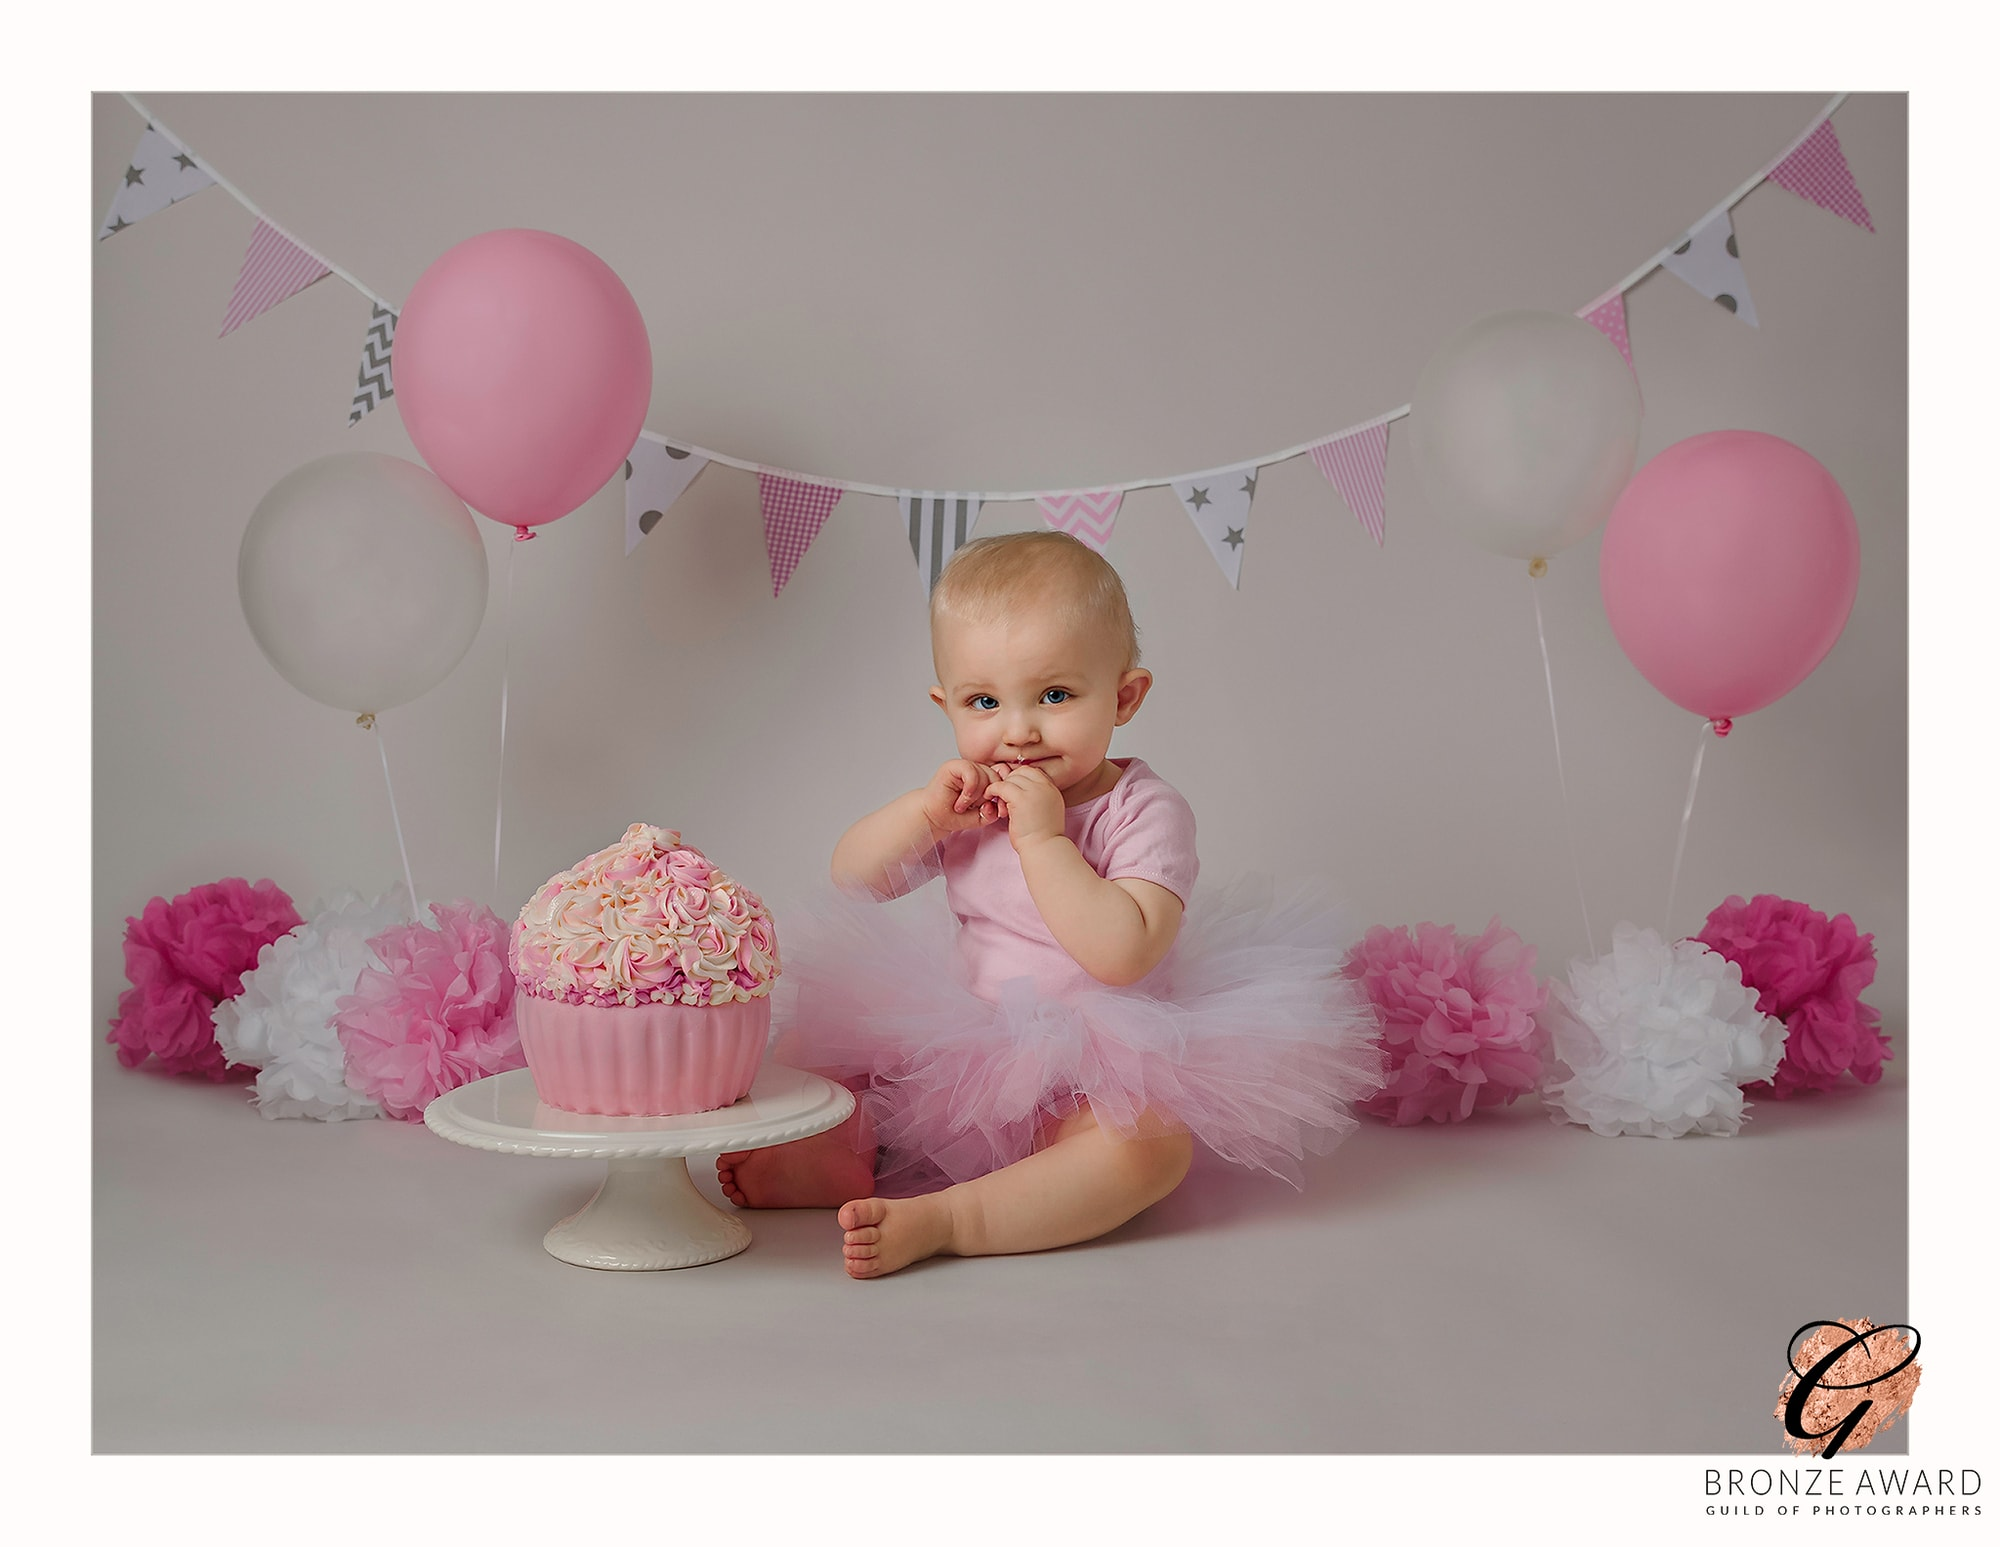 blog image of baby girl in pink tutu with cake how to prepare for cake smash photoshoot in hurstpierpoint